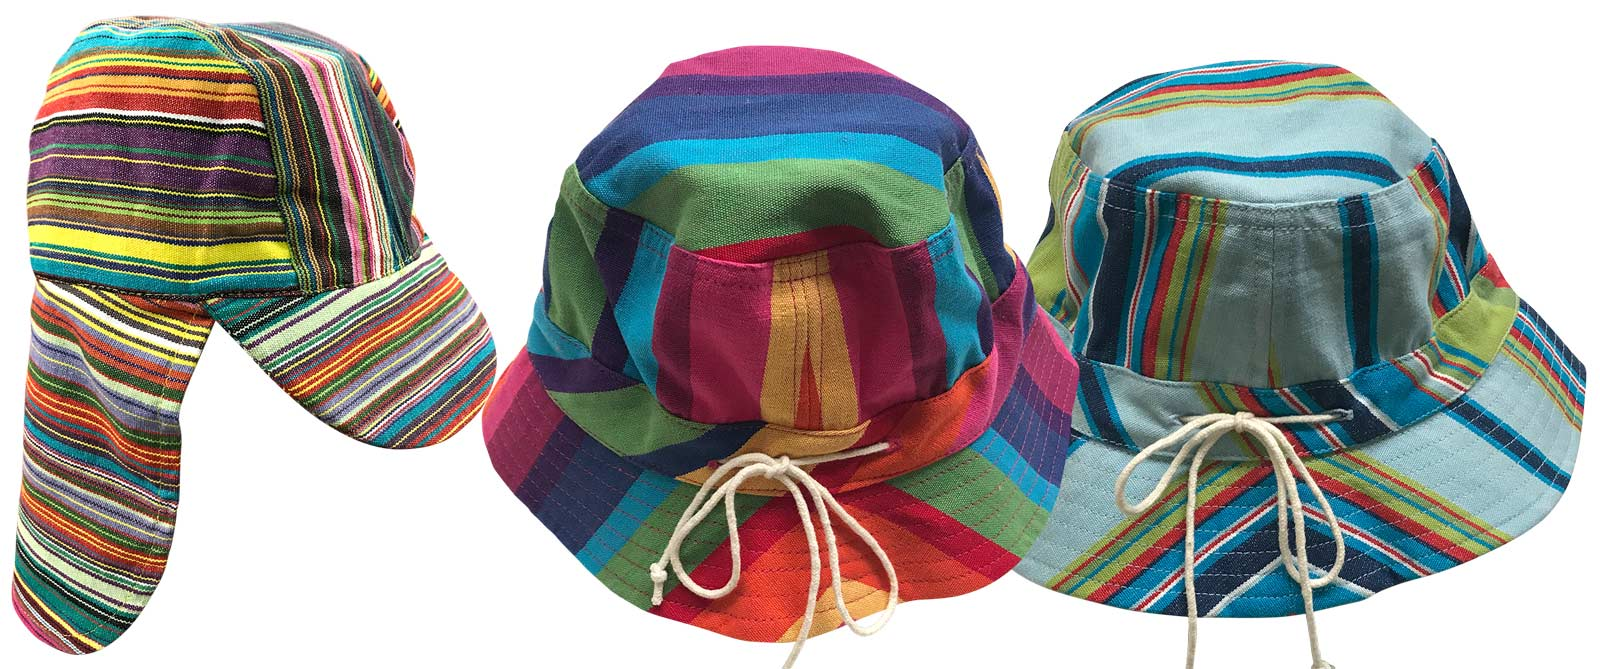 Kids Bucket Hats | Childrens Striped Sun Hats